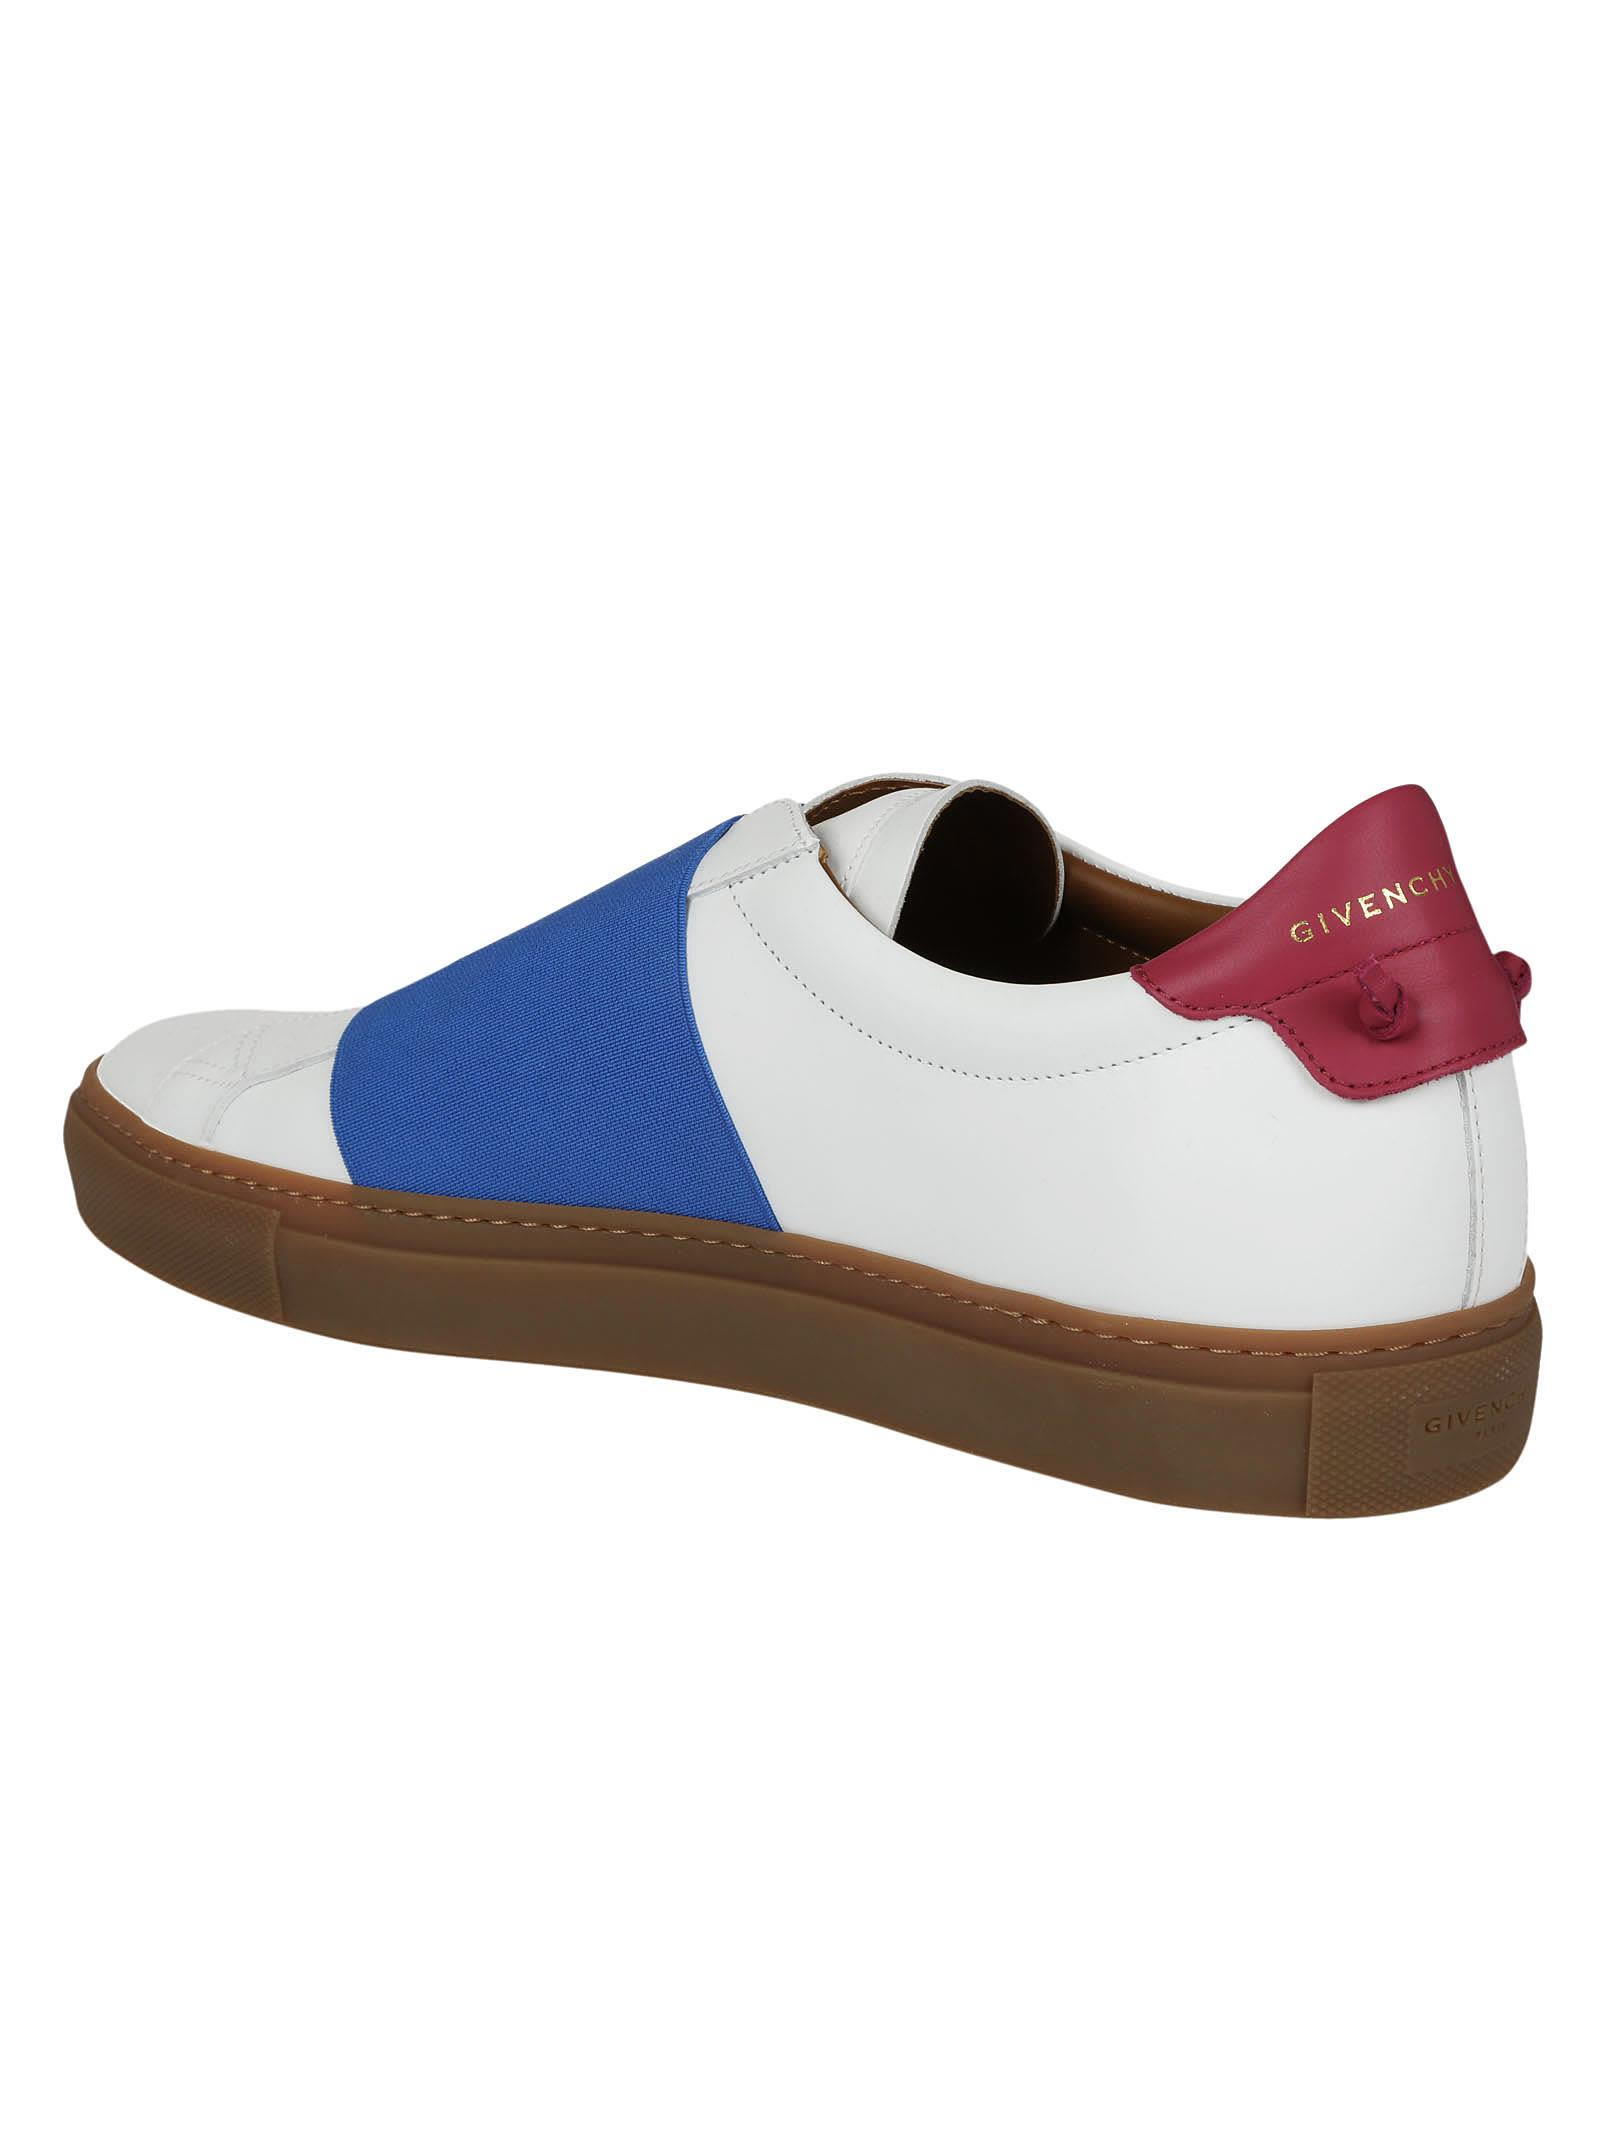 Givenchy - Givenchy Front Band Sneakers - White/Blue, Men's Sneakers | Italist